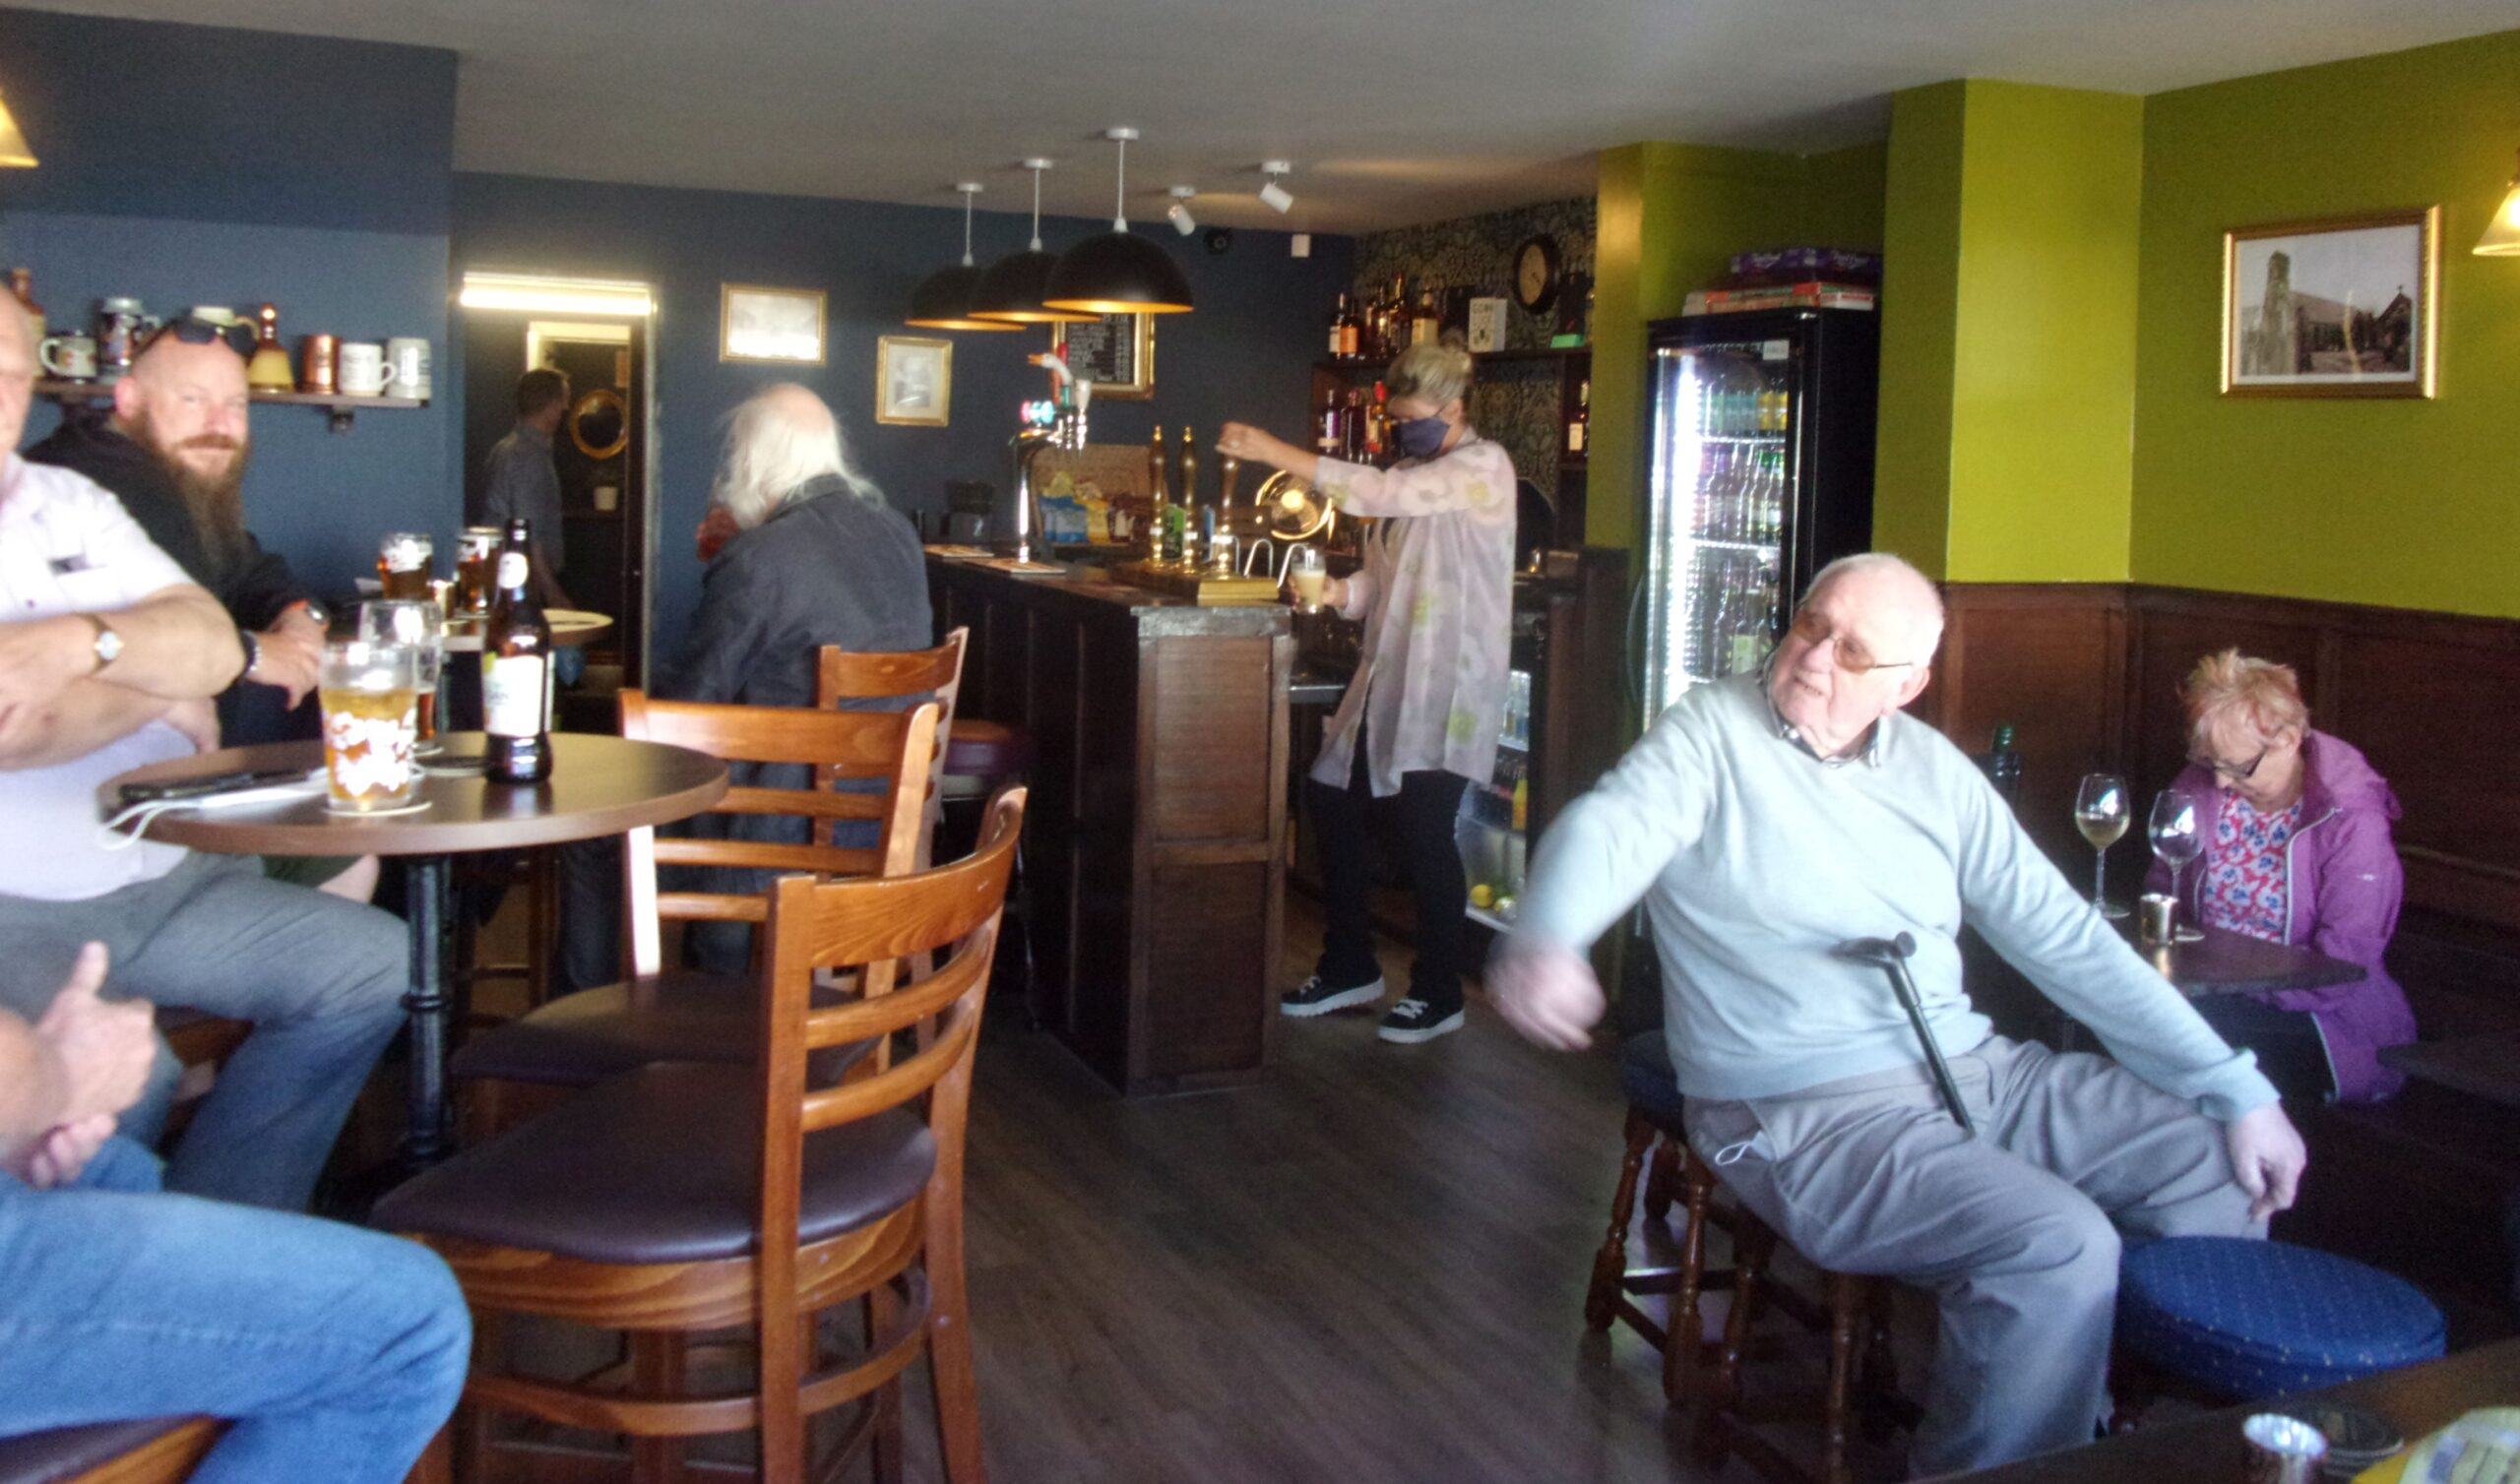 The Beer Den 2 on Rufford Road in Crossens in Southport. Photo by Neville Grundy